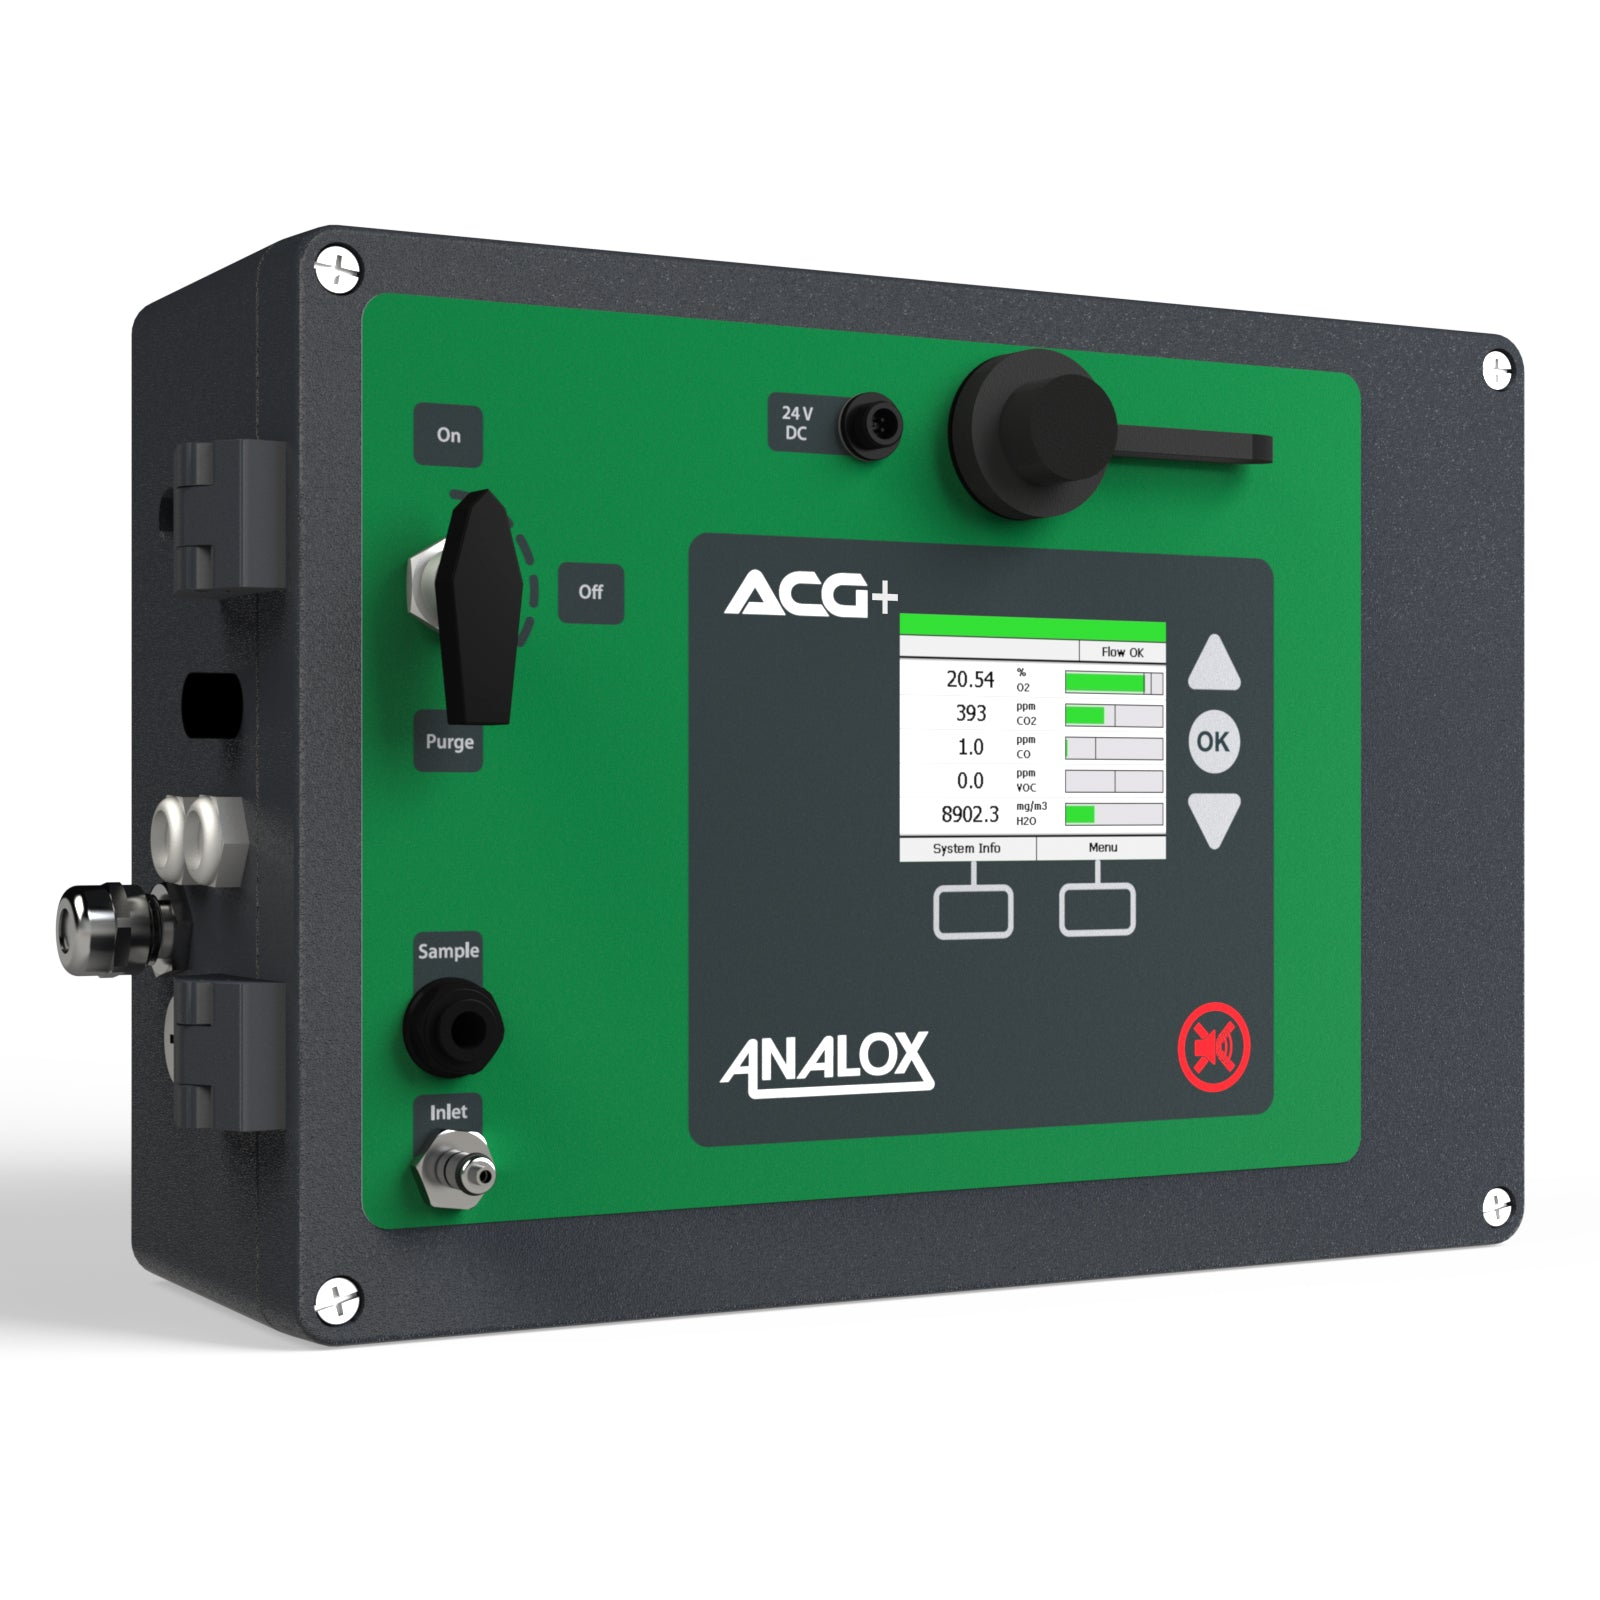 A rendering showing the ACG+ breathing air monitor from Analox. Front view showing main input controls.